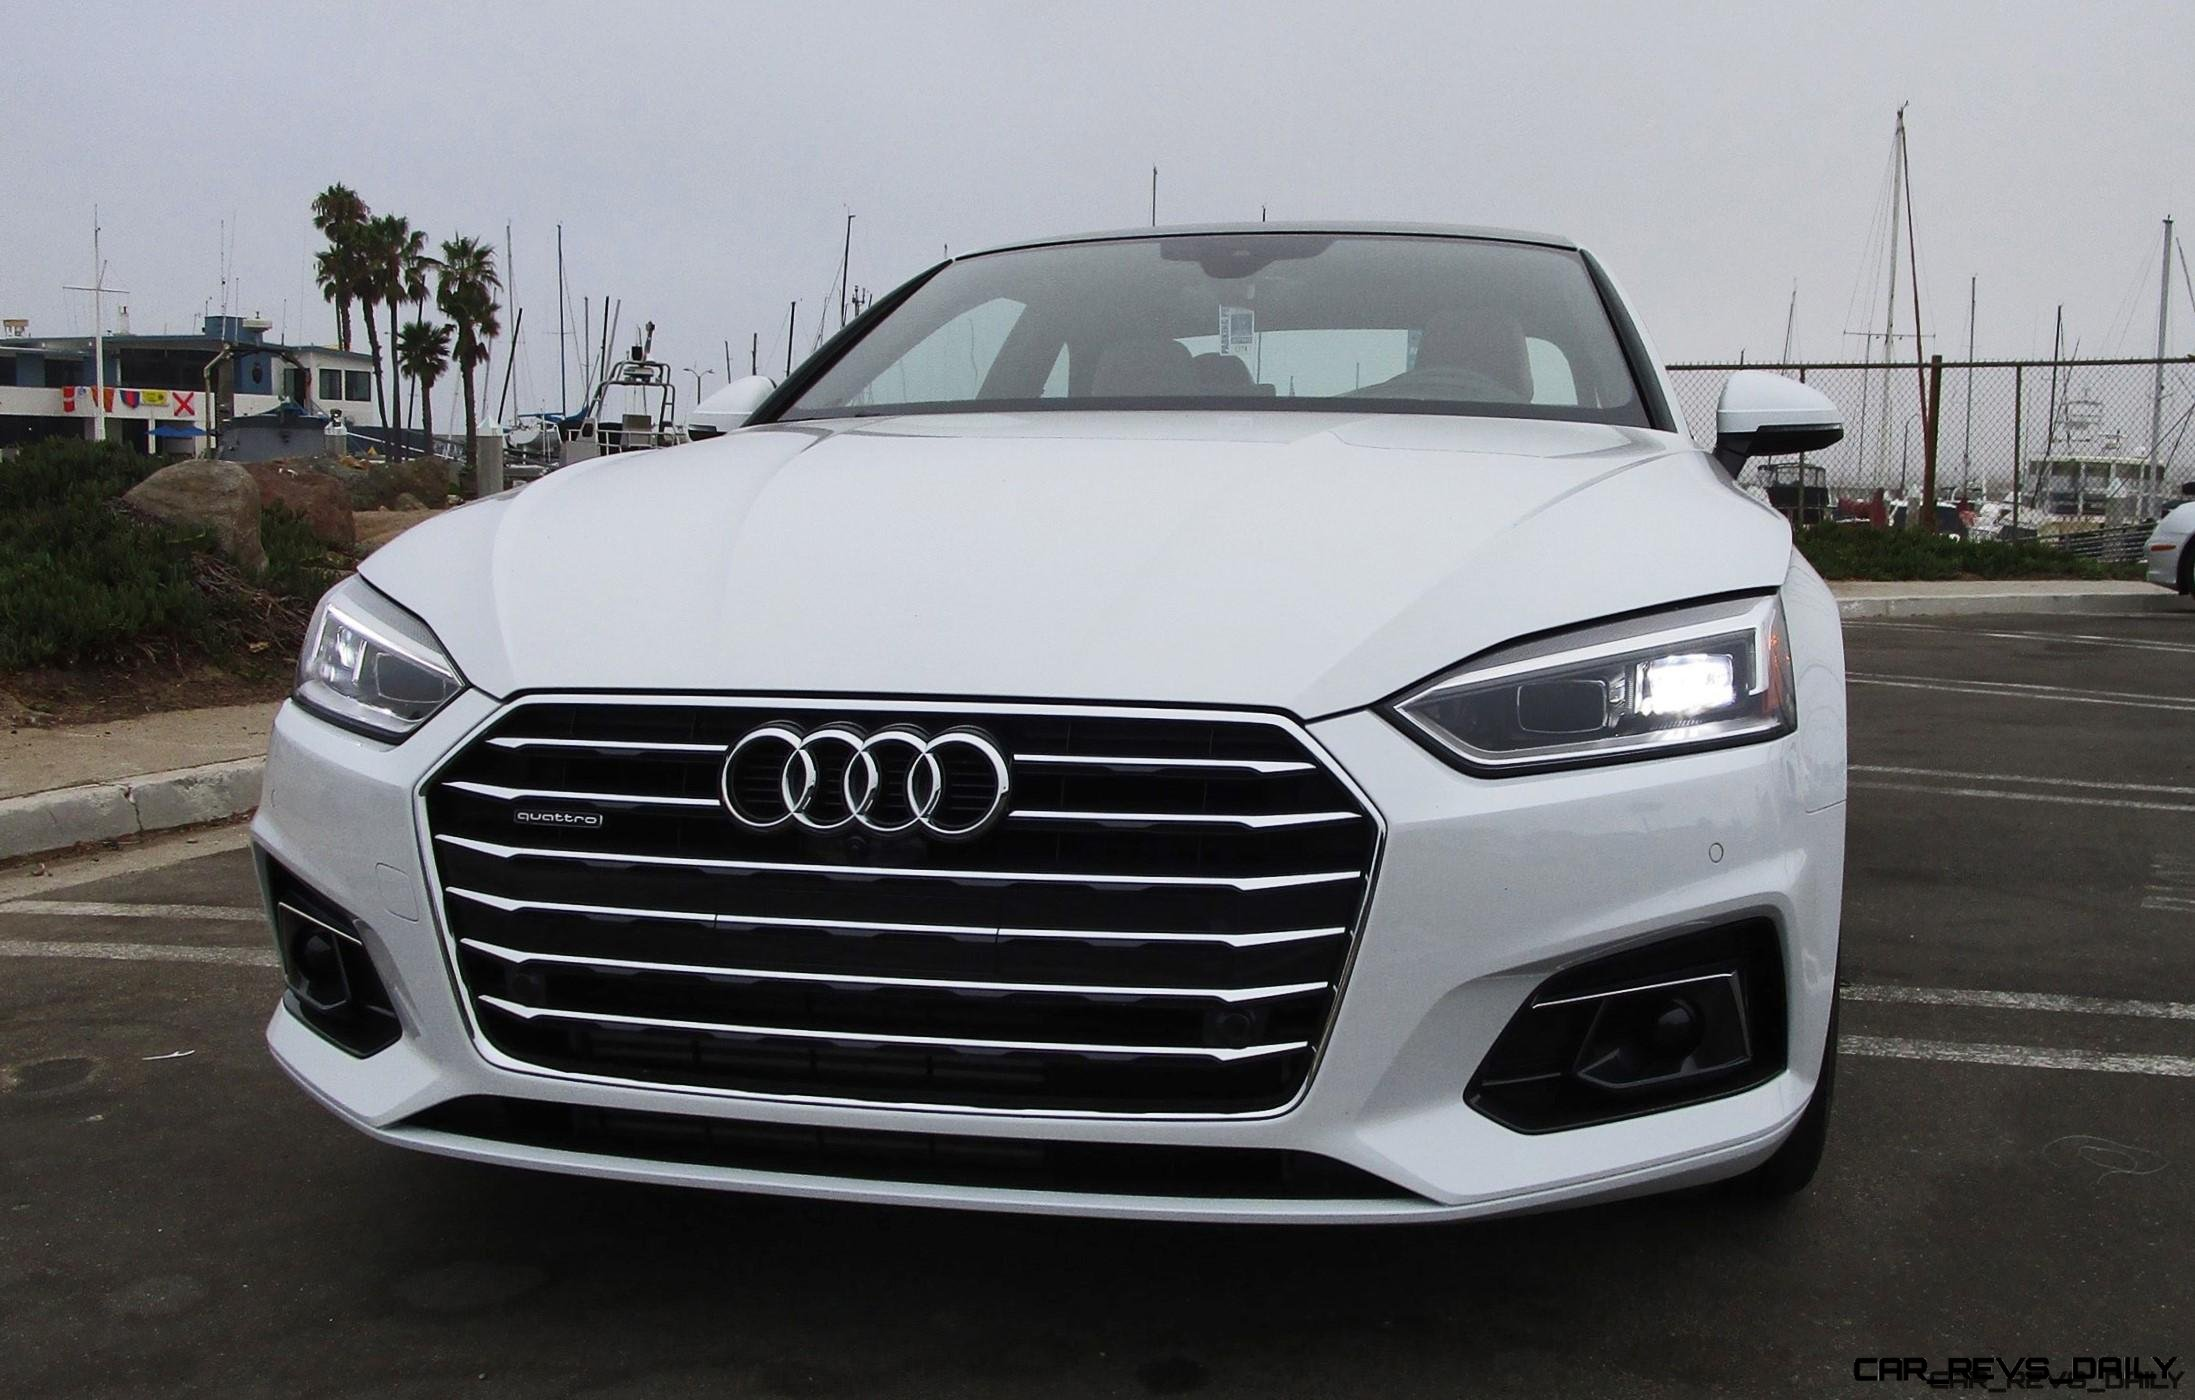 2018 audi a5 coupe 2 0t quattro s tronic road test review by ben lewis latest news. Black Bedroom Furniture Sets. Home Design Ideas